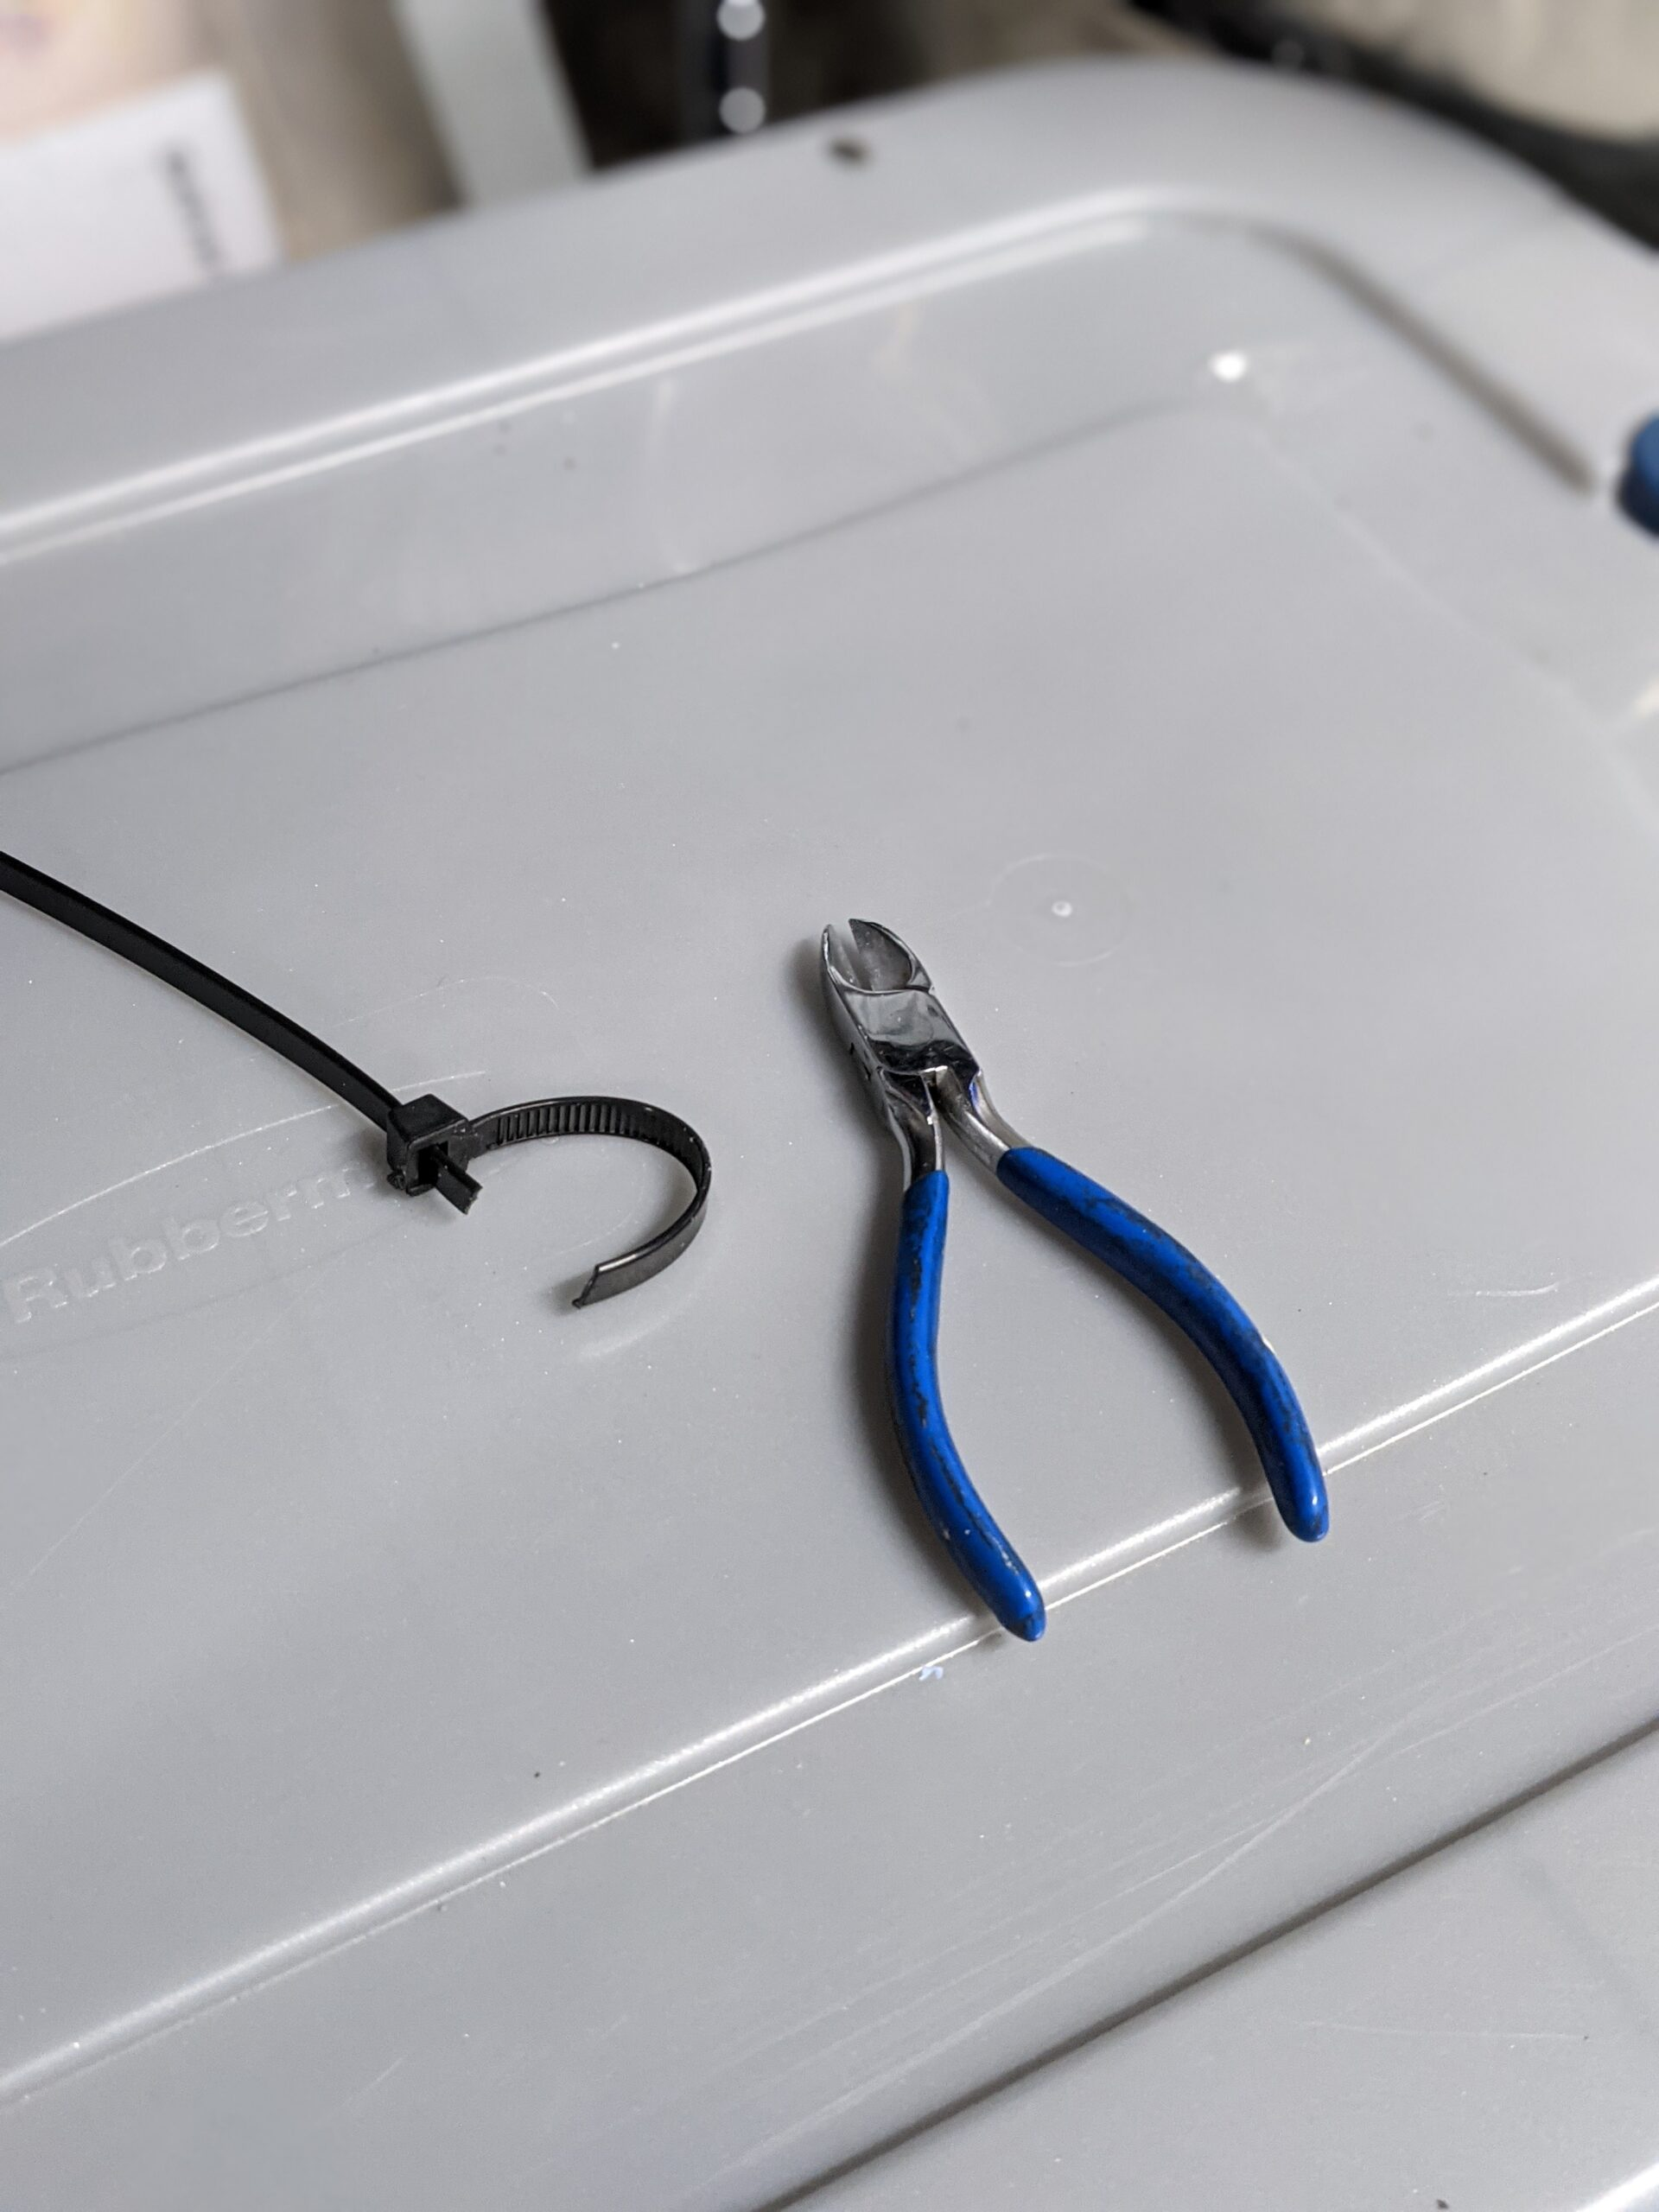 Wire cutter pictured next to a cut heavy duty zip tie, on top of a plastic storage tote.